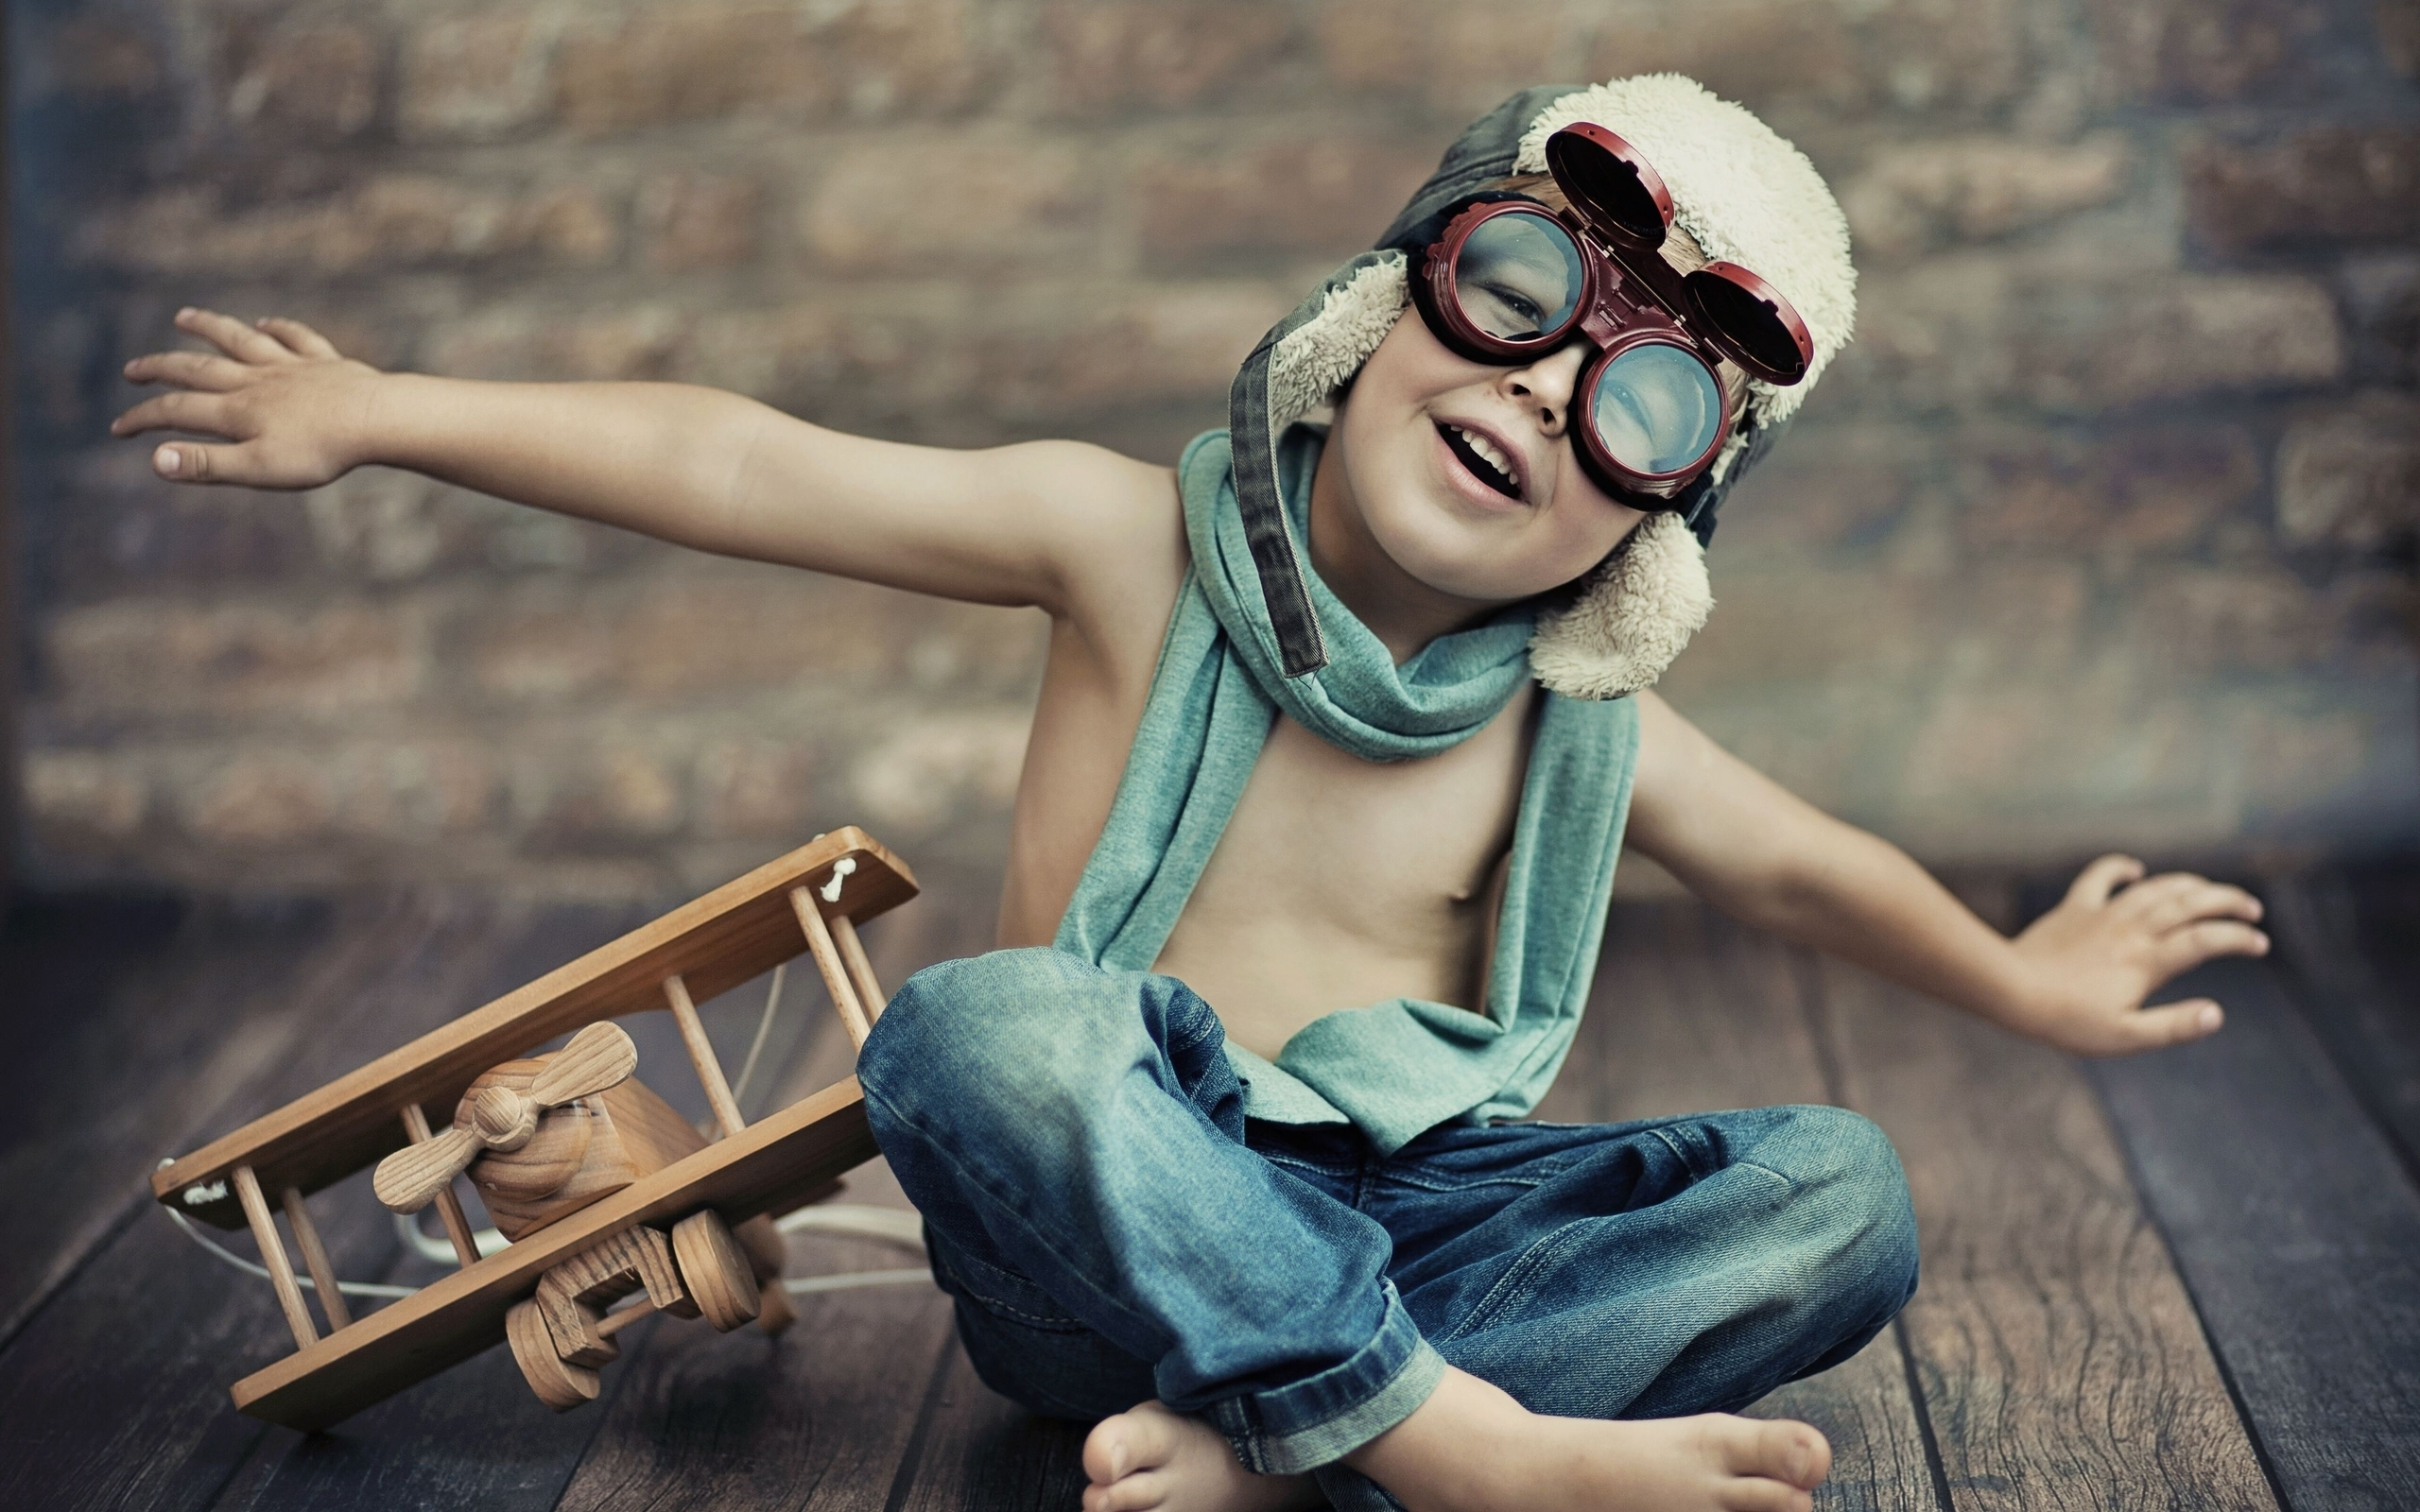 Image: Boy, game, helicopter, toy, sunglasses, hat